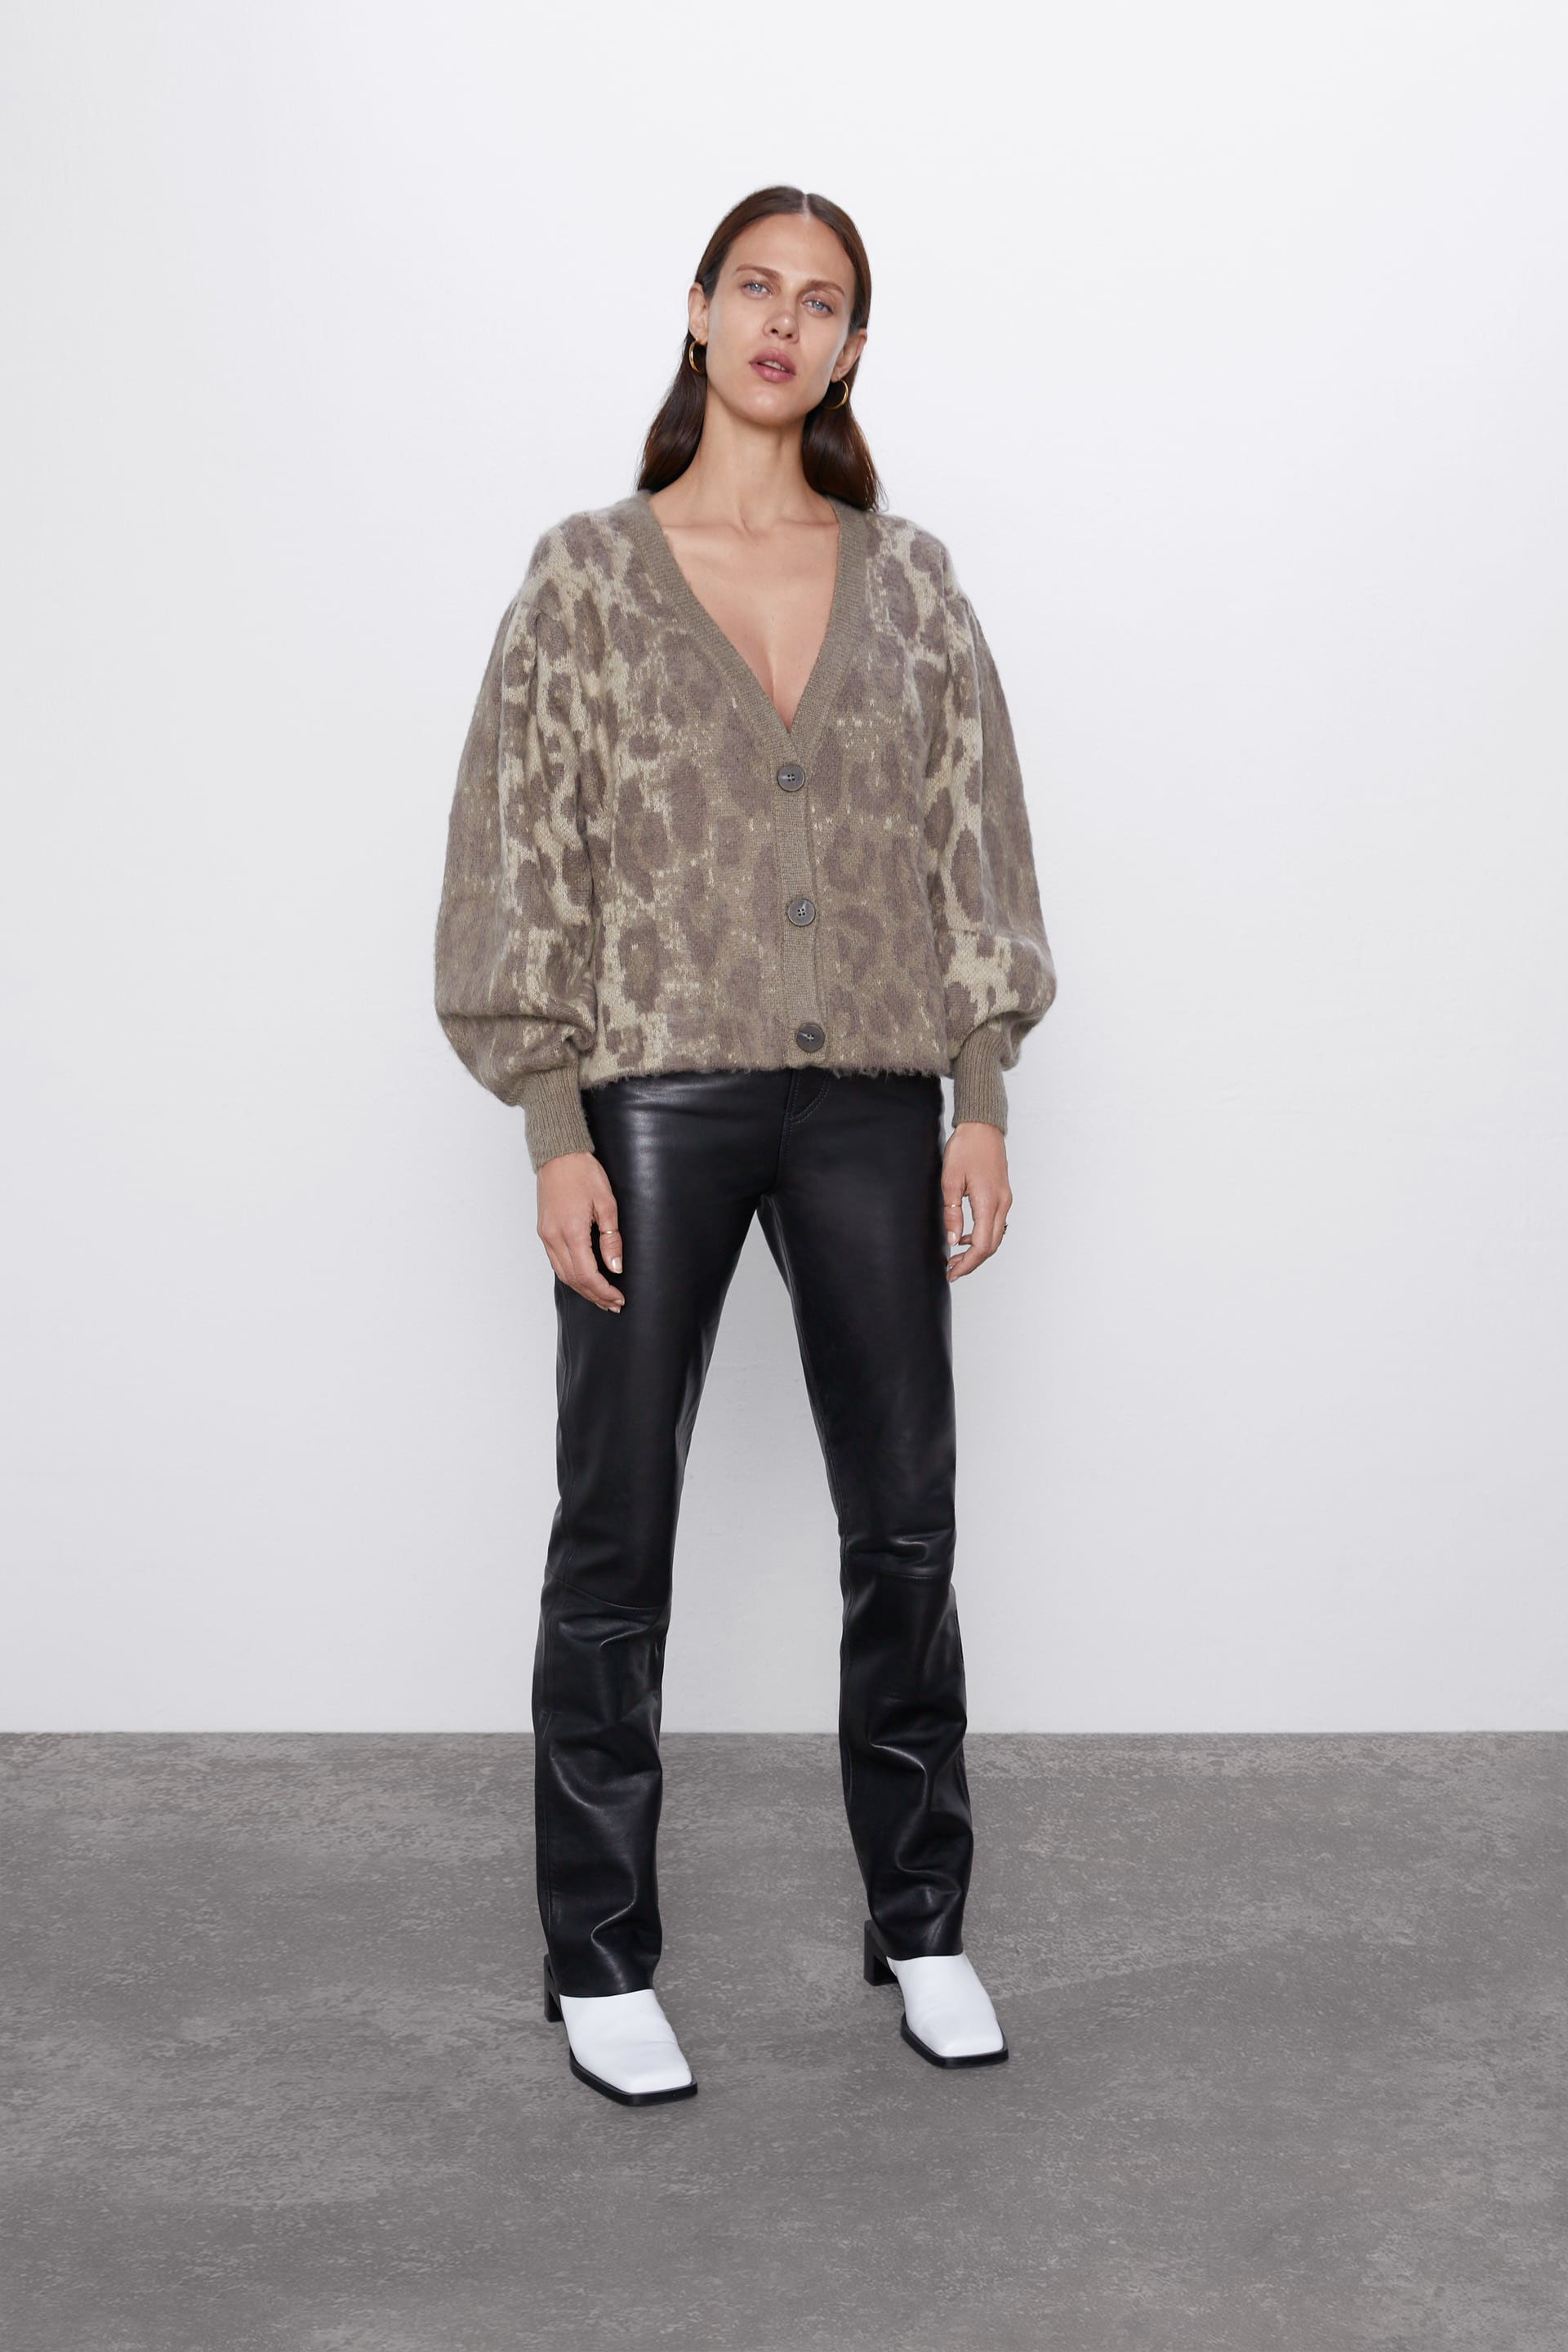 ANIMAL PRINT JACQUARD CARDIGAN